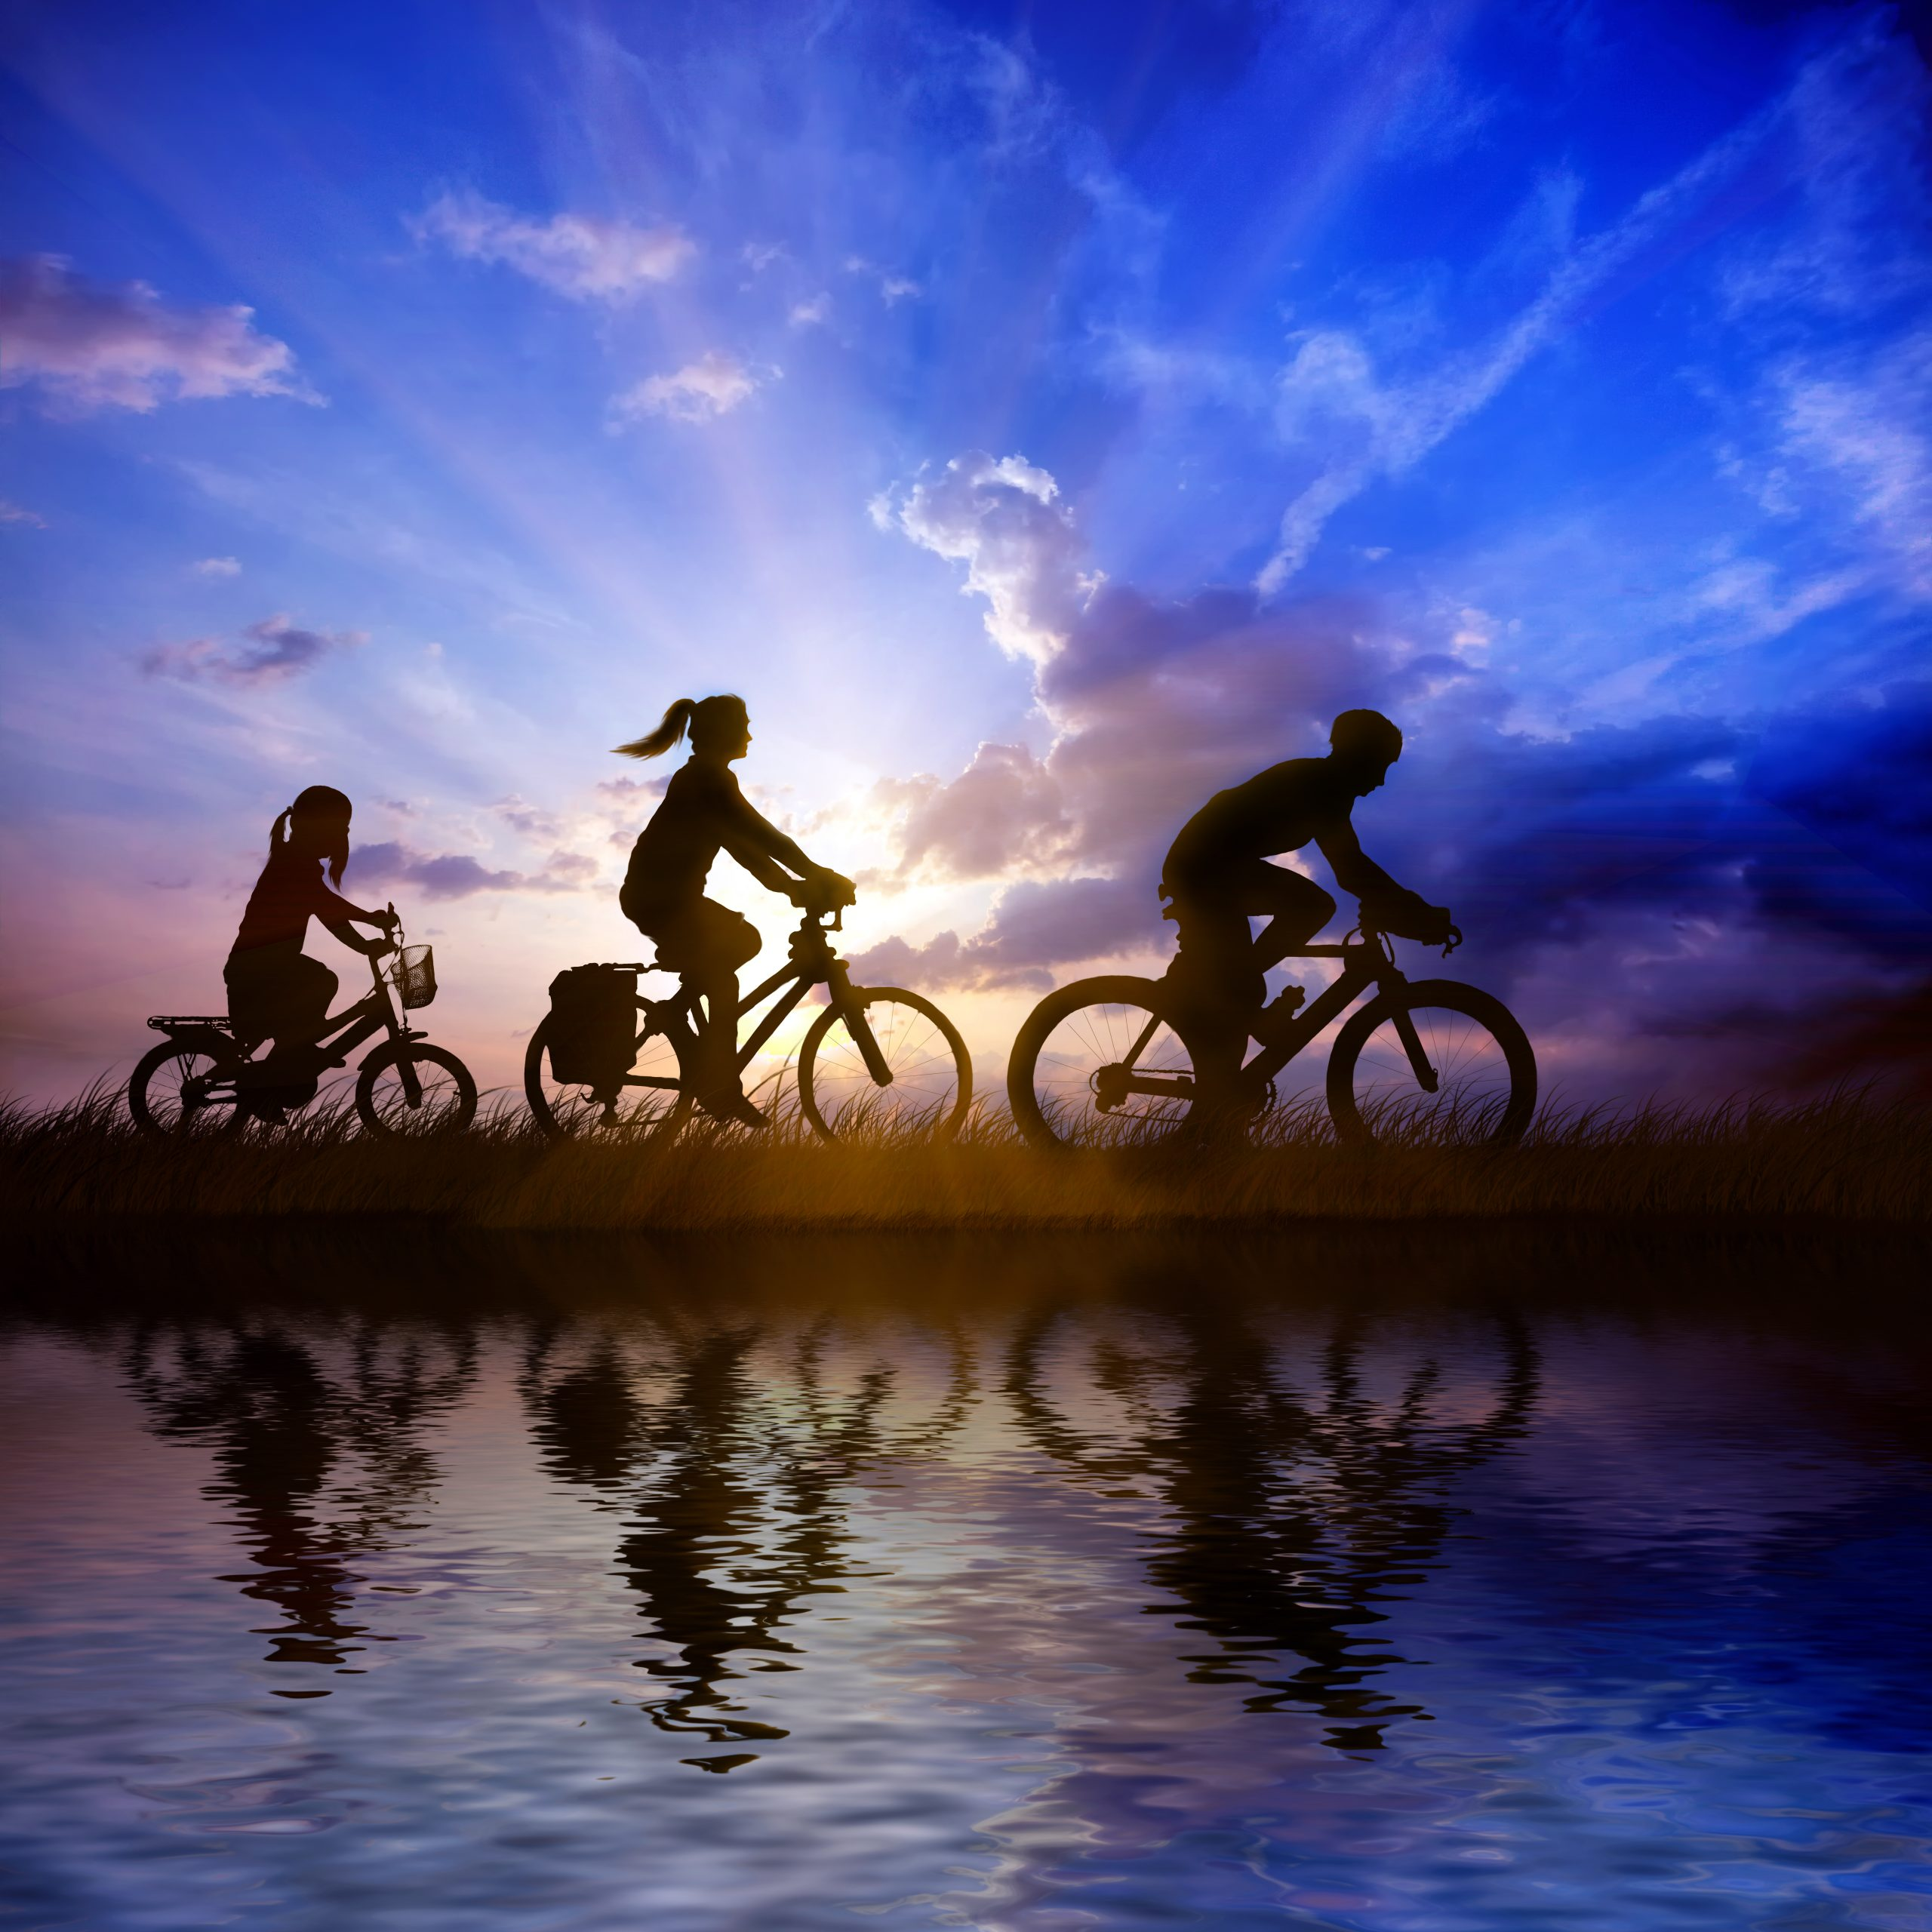 Going cycling with children. The photo shows two adults and a child cycling in the evening with a sunset behind